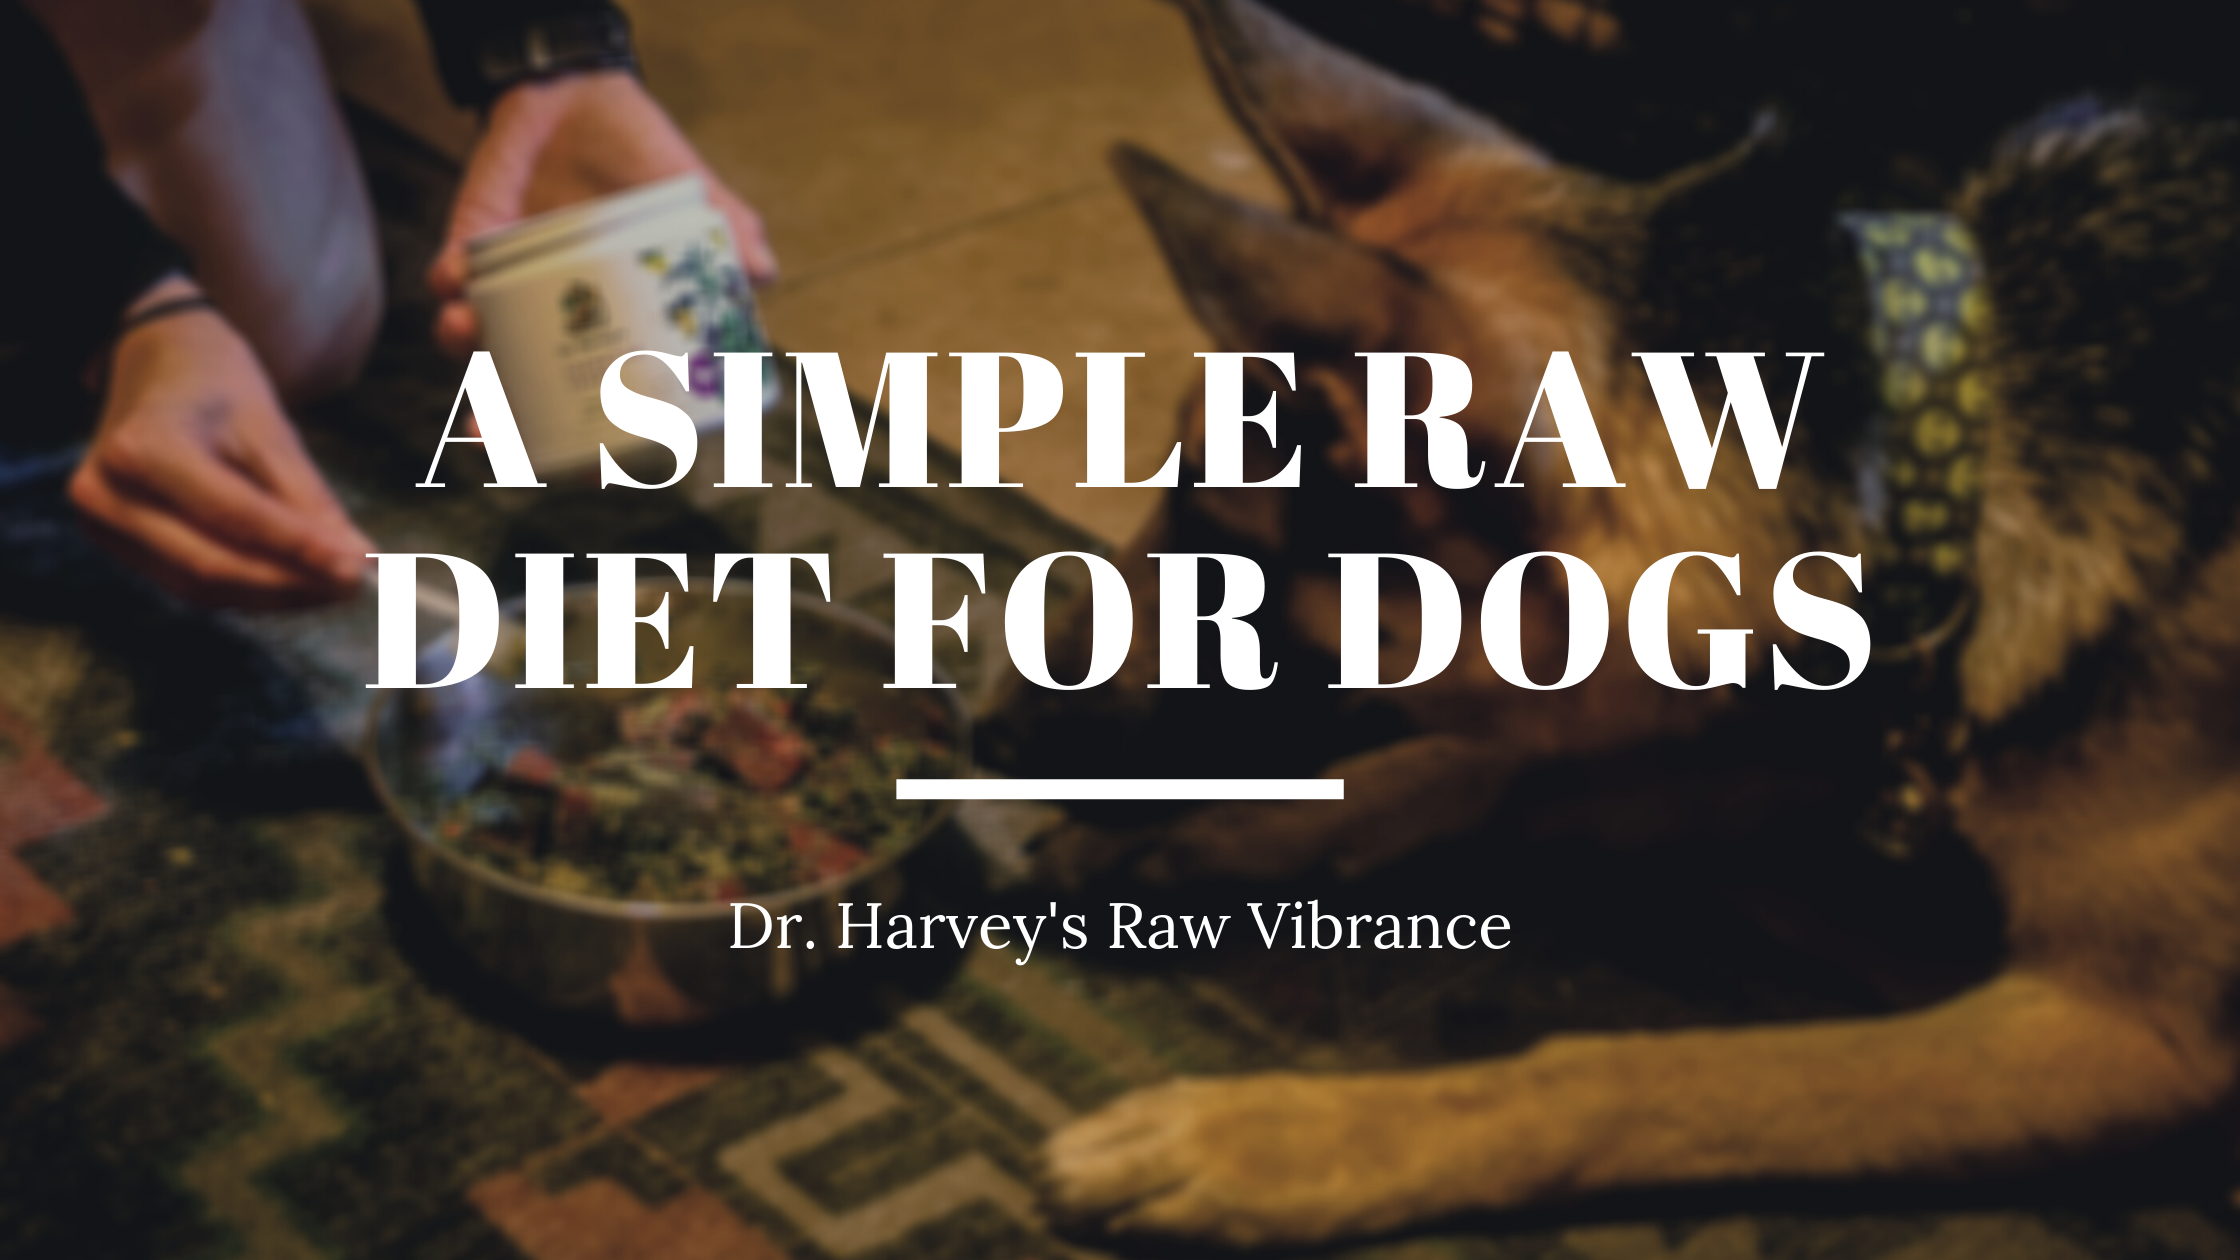 Dr. Harvey's Raw Diet Made Simple